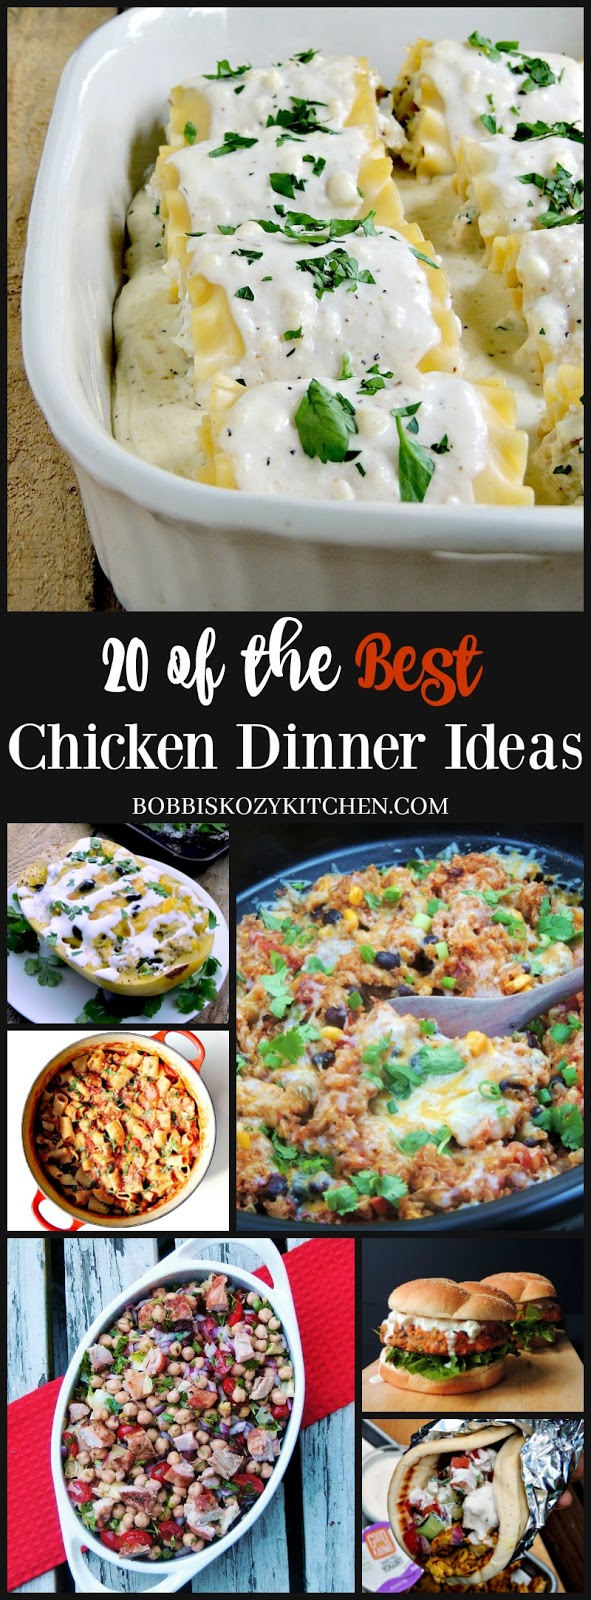 Winner winner 20 of the BEST chicken dinner recipes from www.bobbiskozykitchen.com